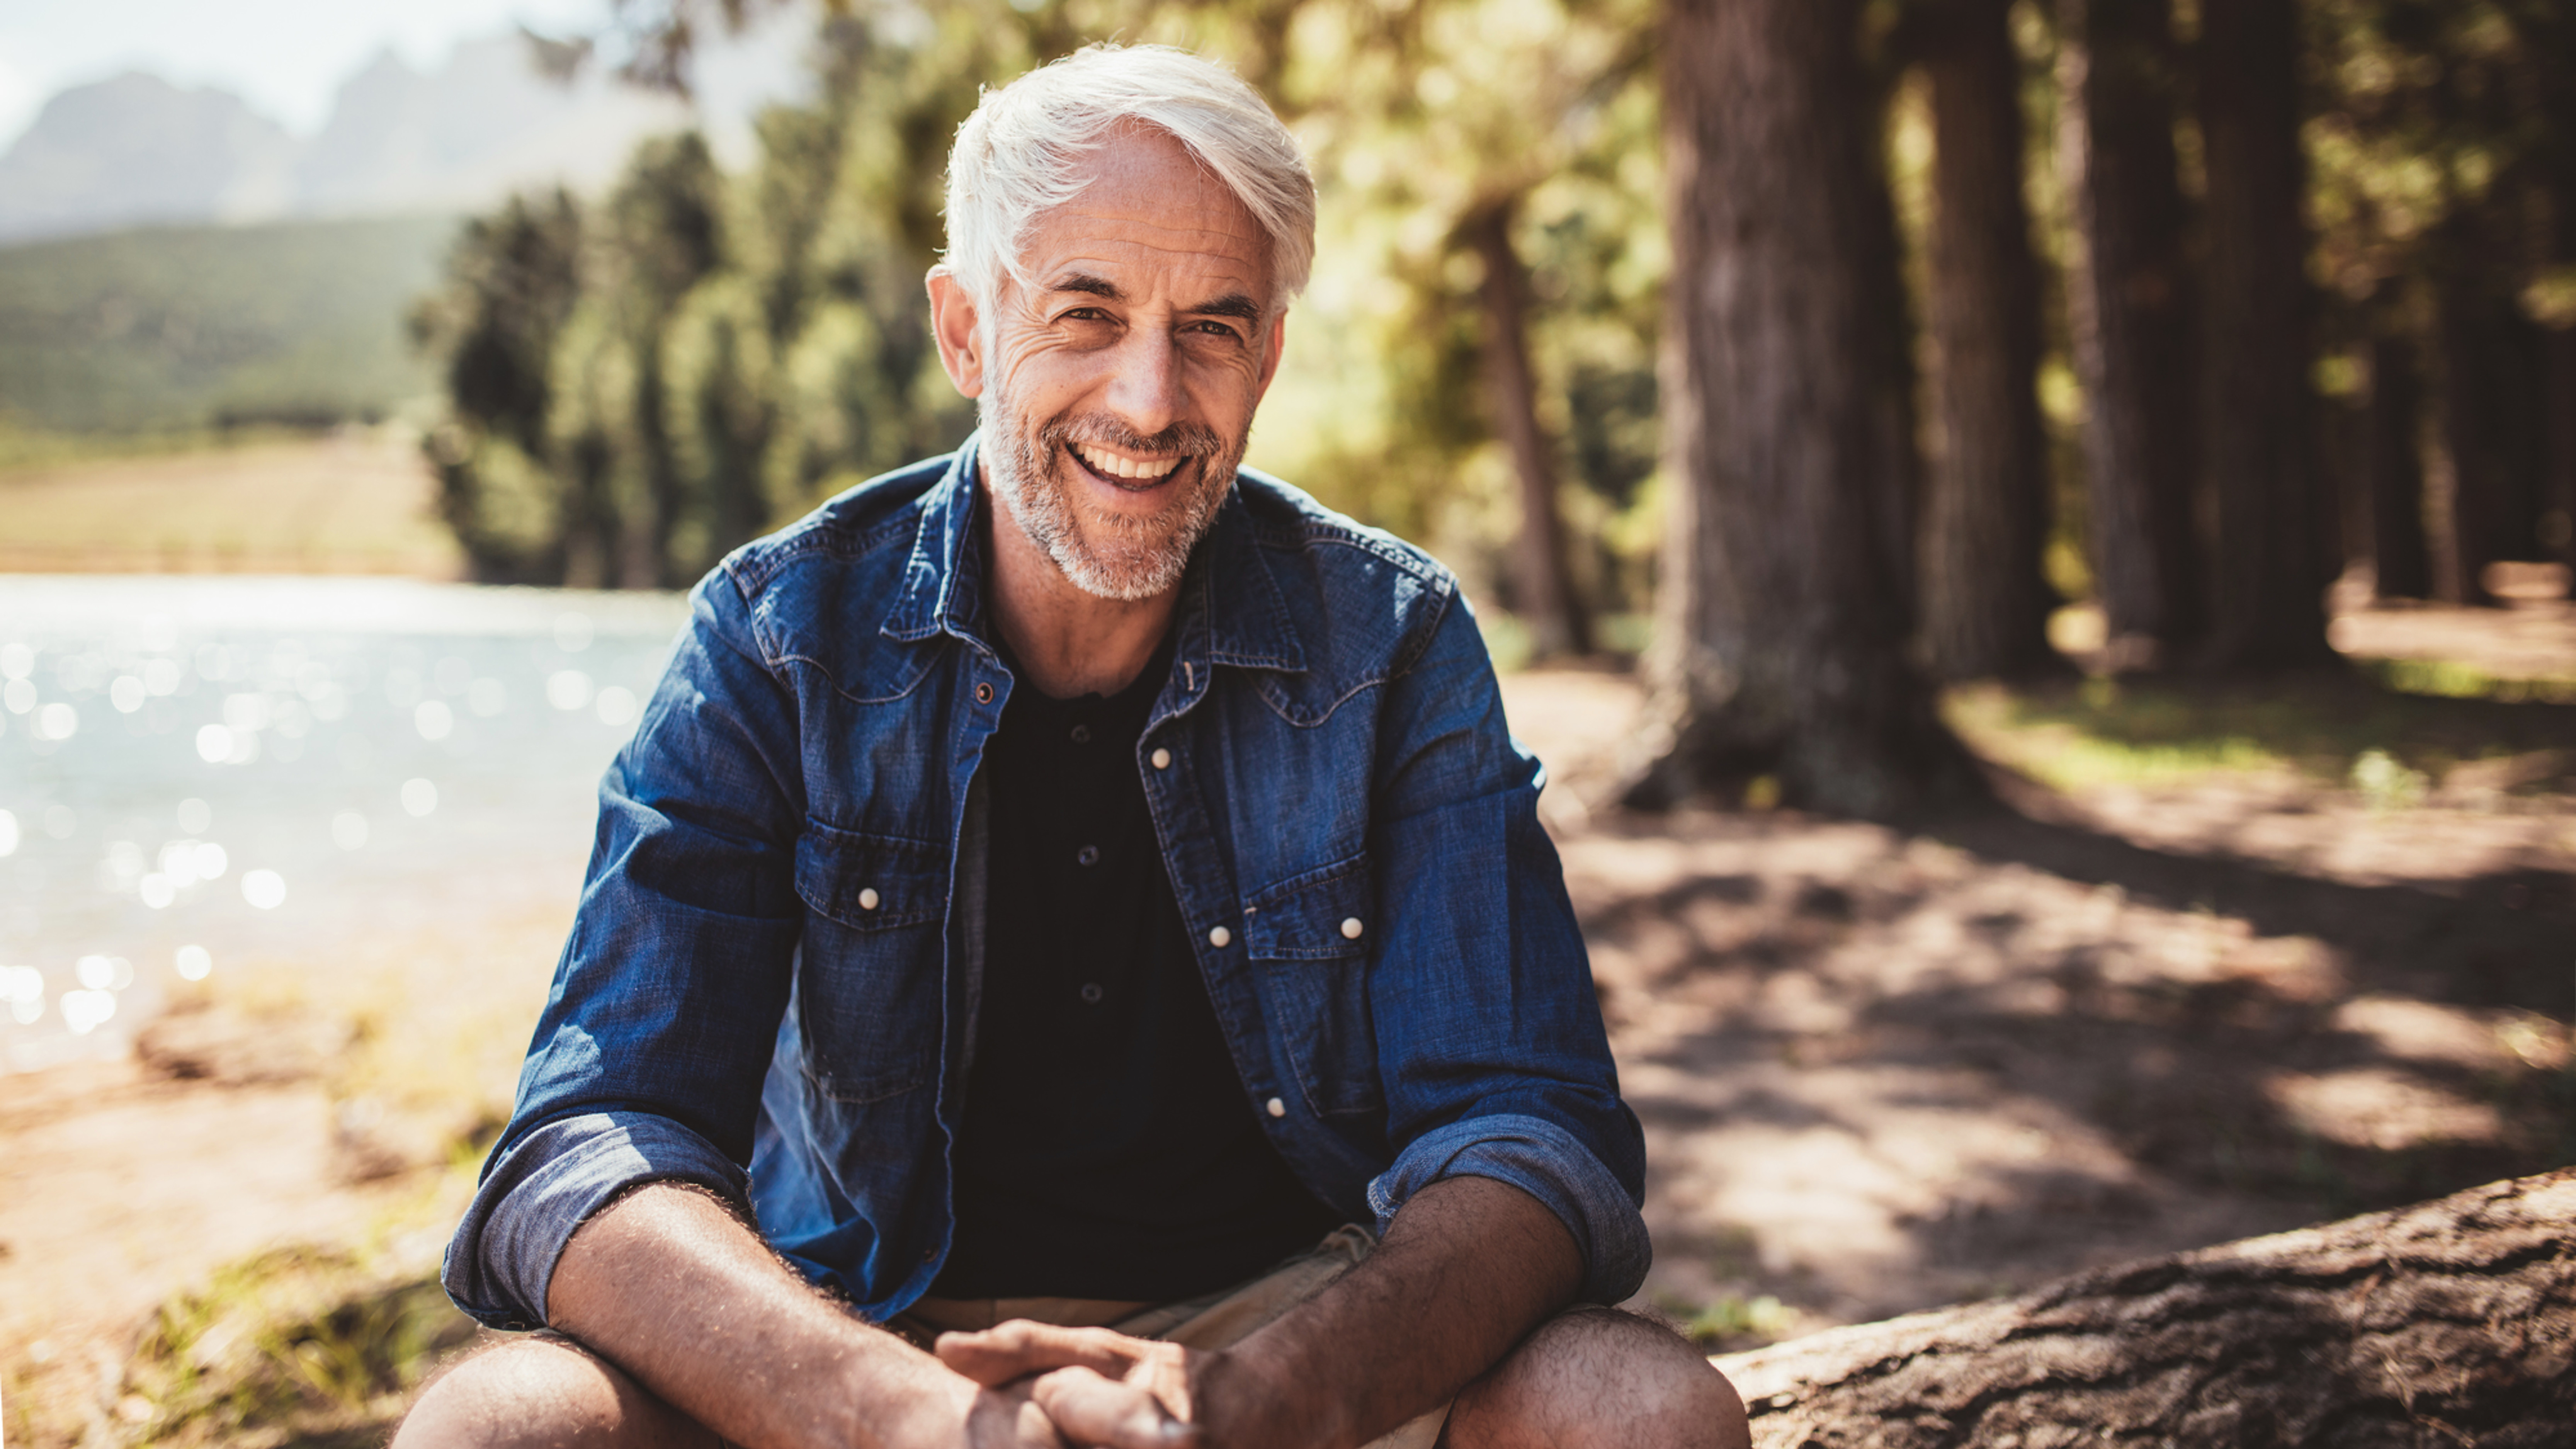 Pelvic Floor Therapy for Men